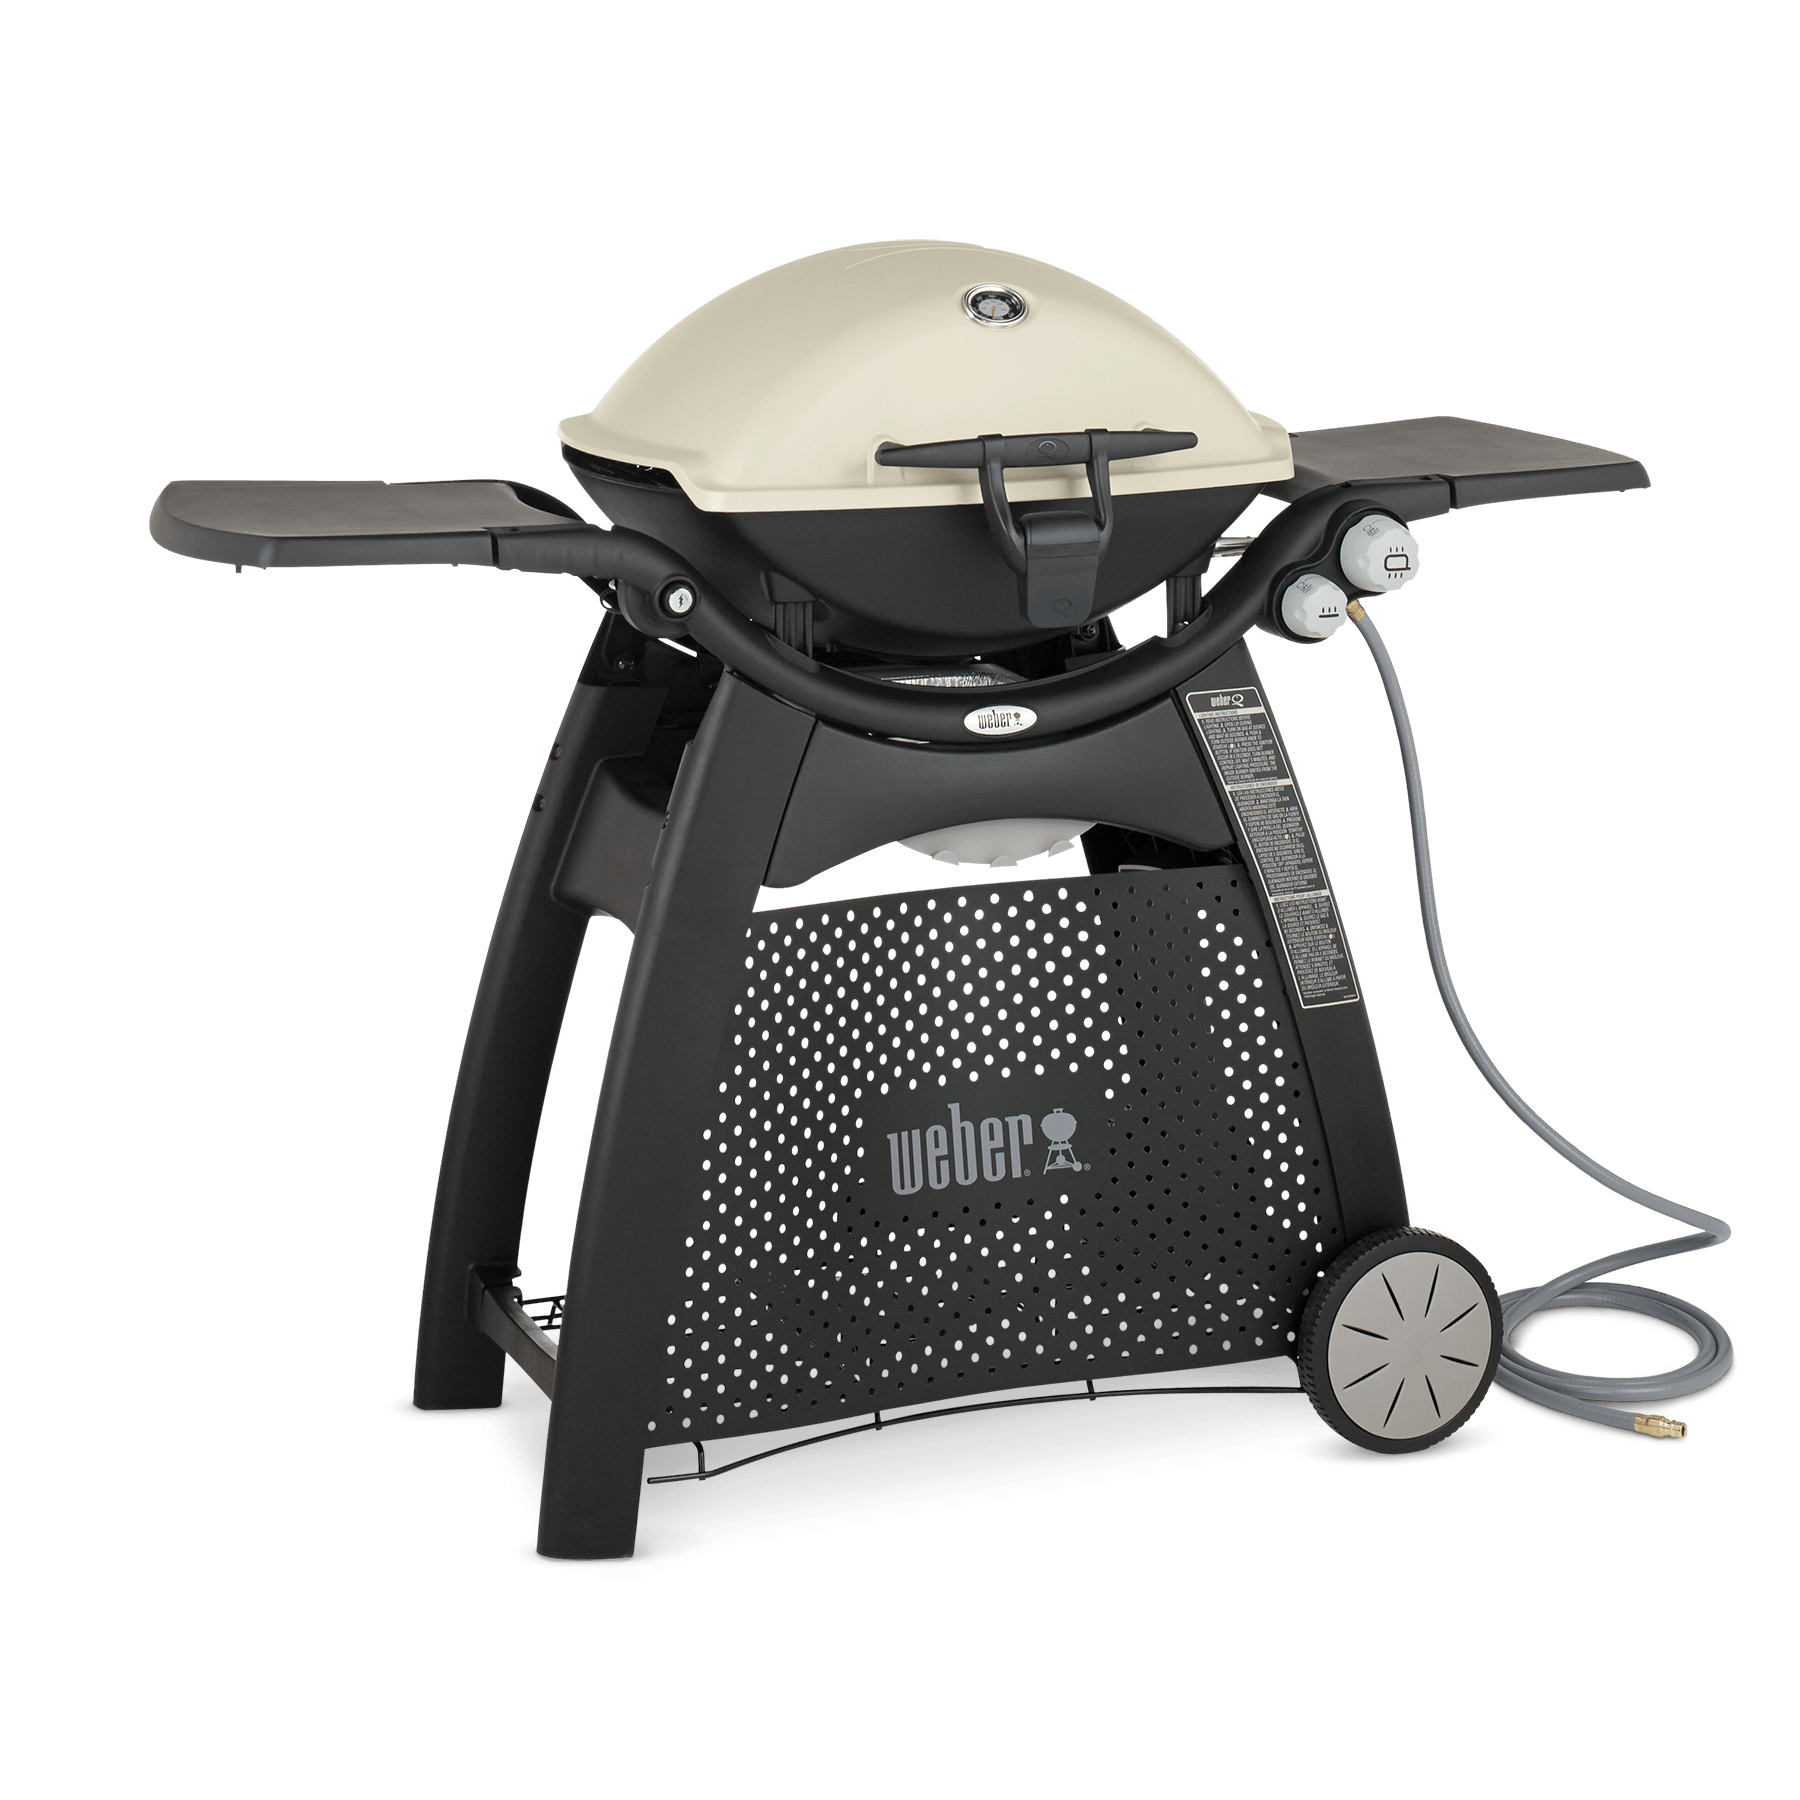 weber q grill stand manual